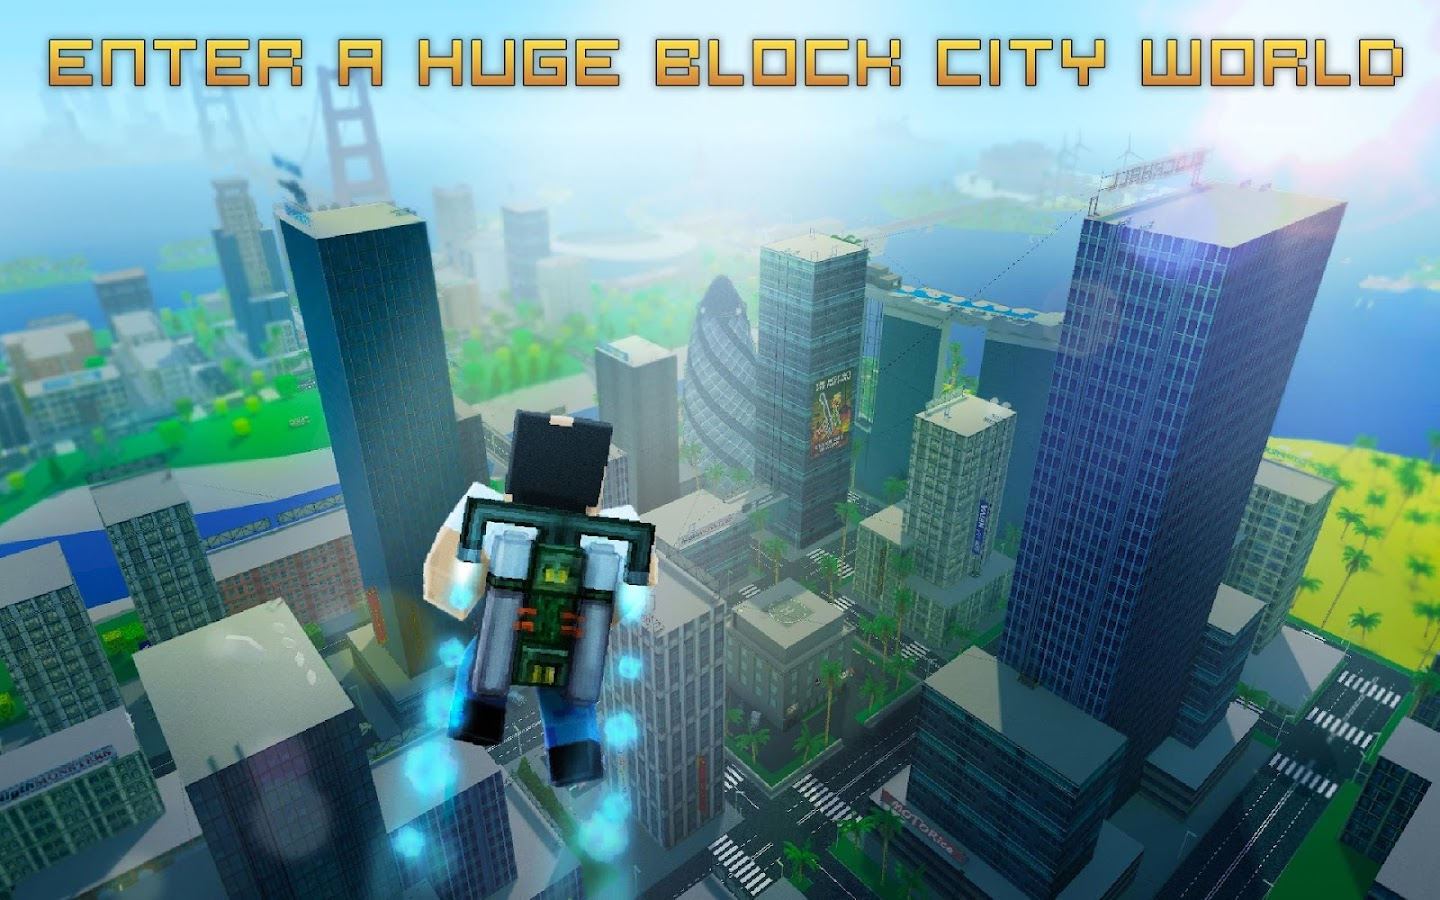 Image currently unavailable. Go to www.generator.bulkhack.com and choose Block City Wars image, you will be redirect to Block City Wars Generator site.